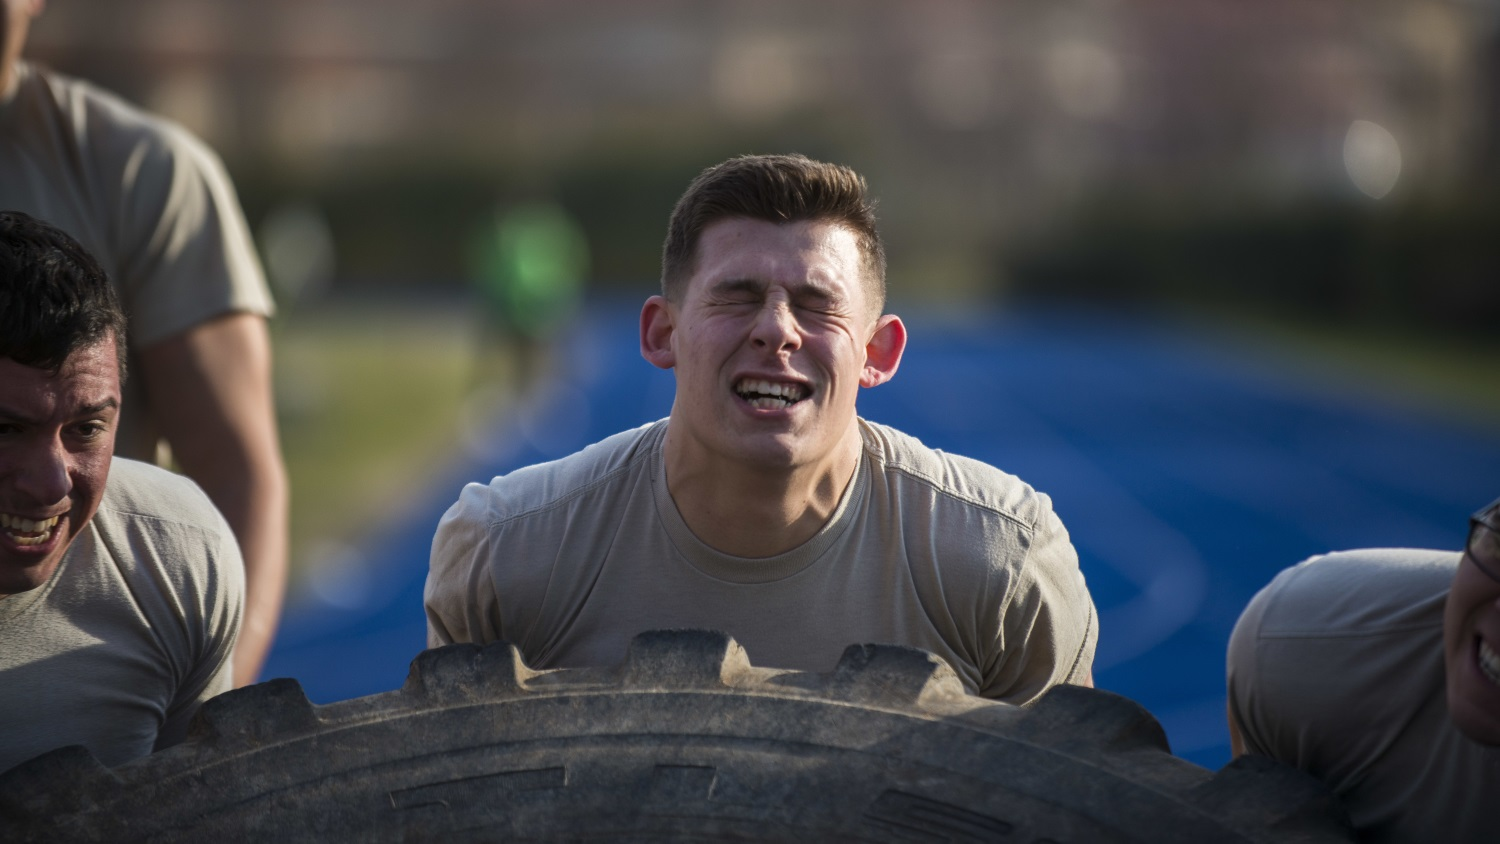 Airman 1st Class Nicholas Castellucci, 724th Air Mobility Squadron member, flips a tire with his teammates during the first Combat Warrior Challenge at Aviano Air Base, March 14, 2017. The four-day competition included obstacles such as a wall climb, tire flip, and kettle bell carry. (USenior Airman Cory W. Bush/Air Force)